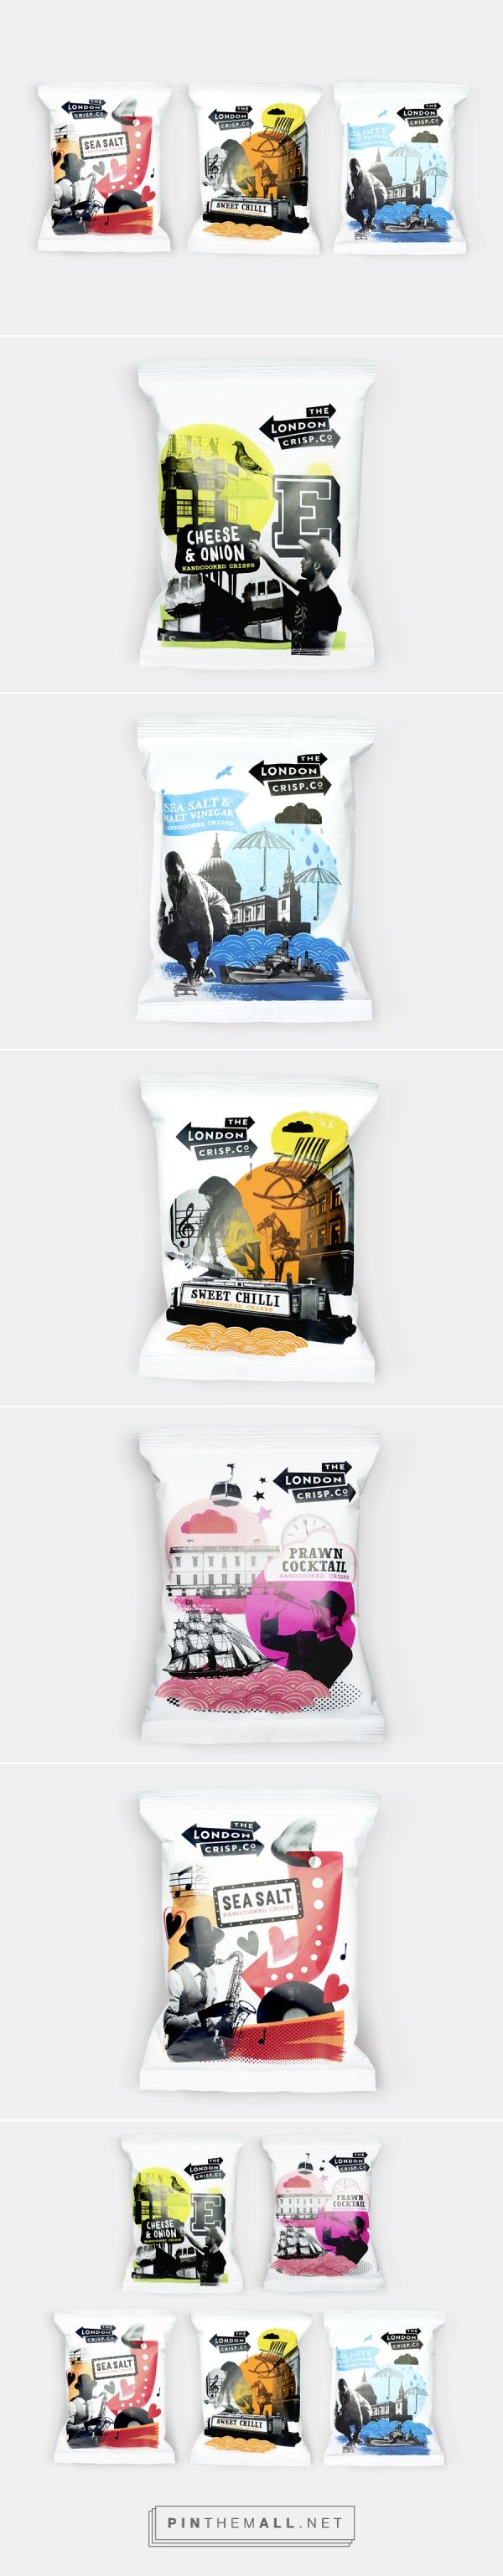 Packaging for The London Crisp Co. by B&B Studio